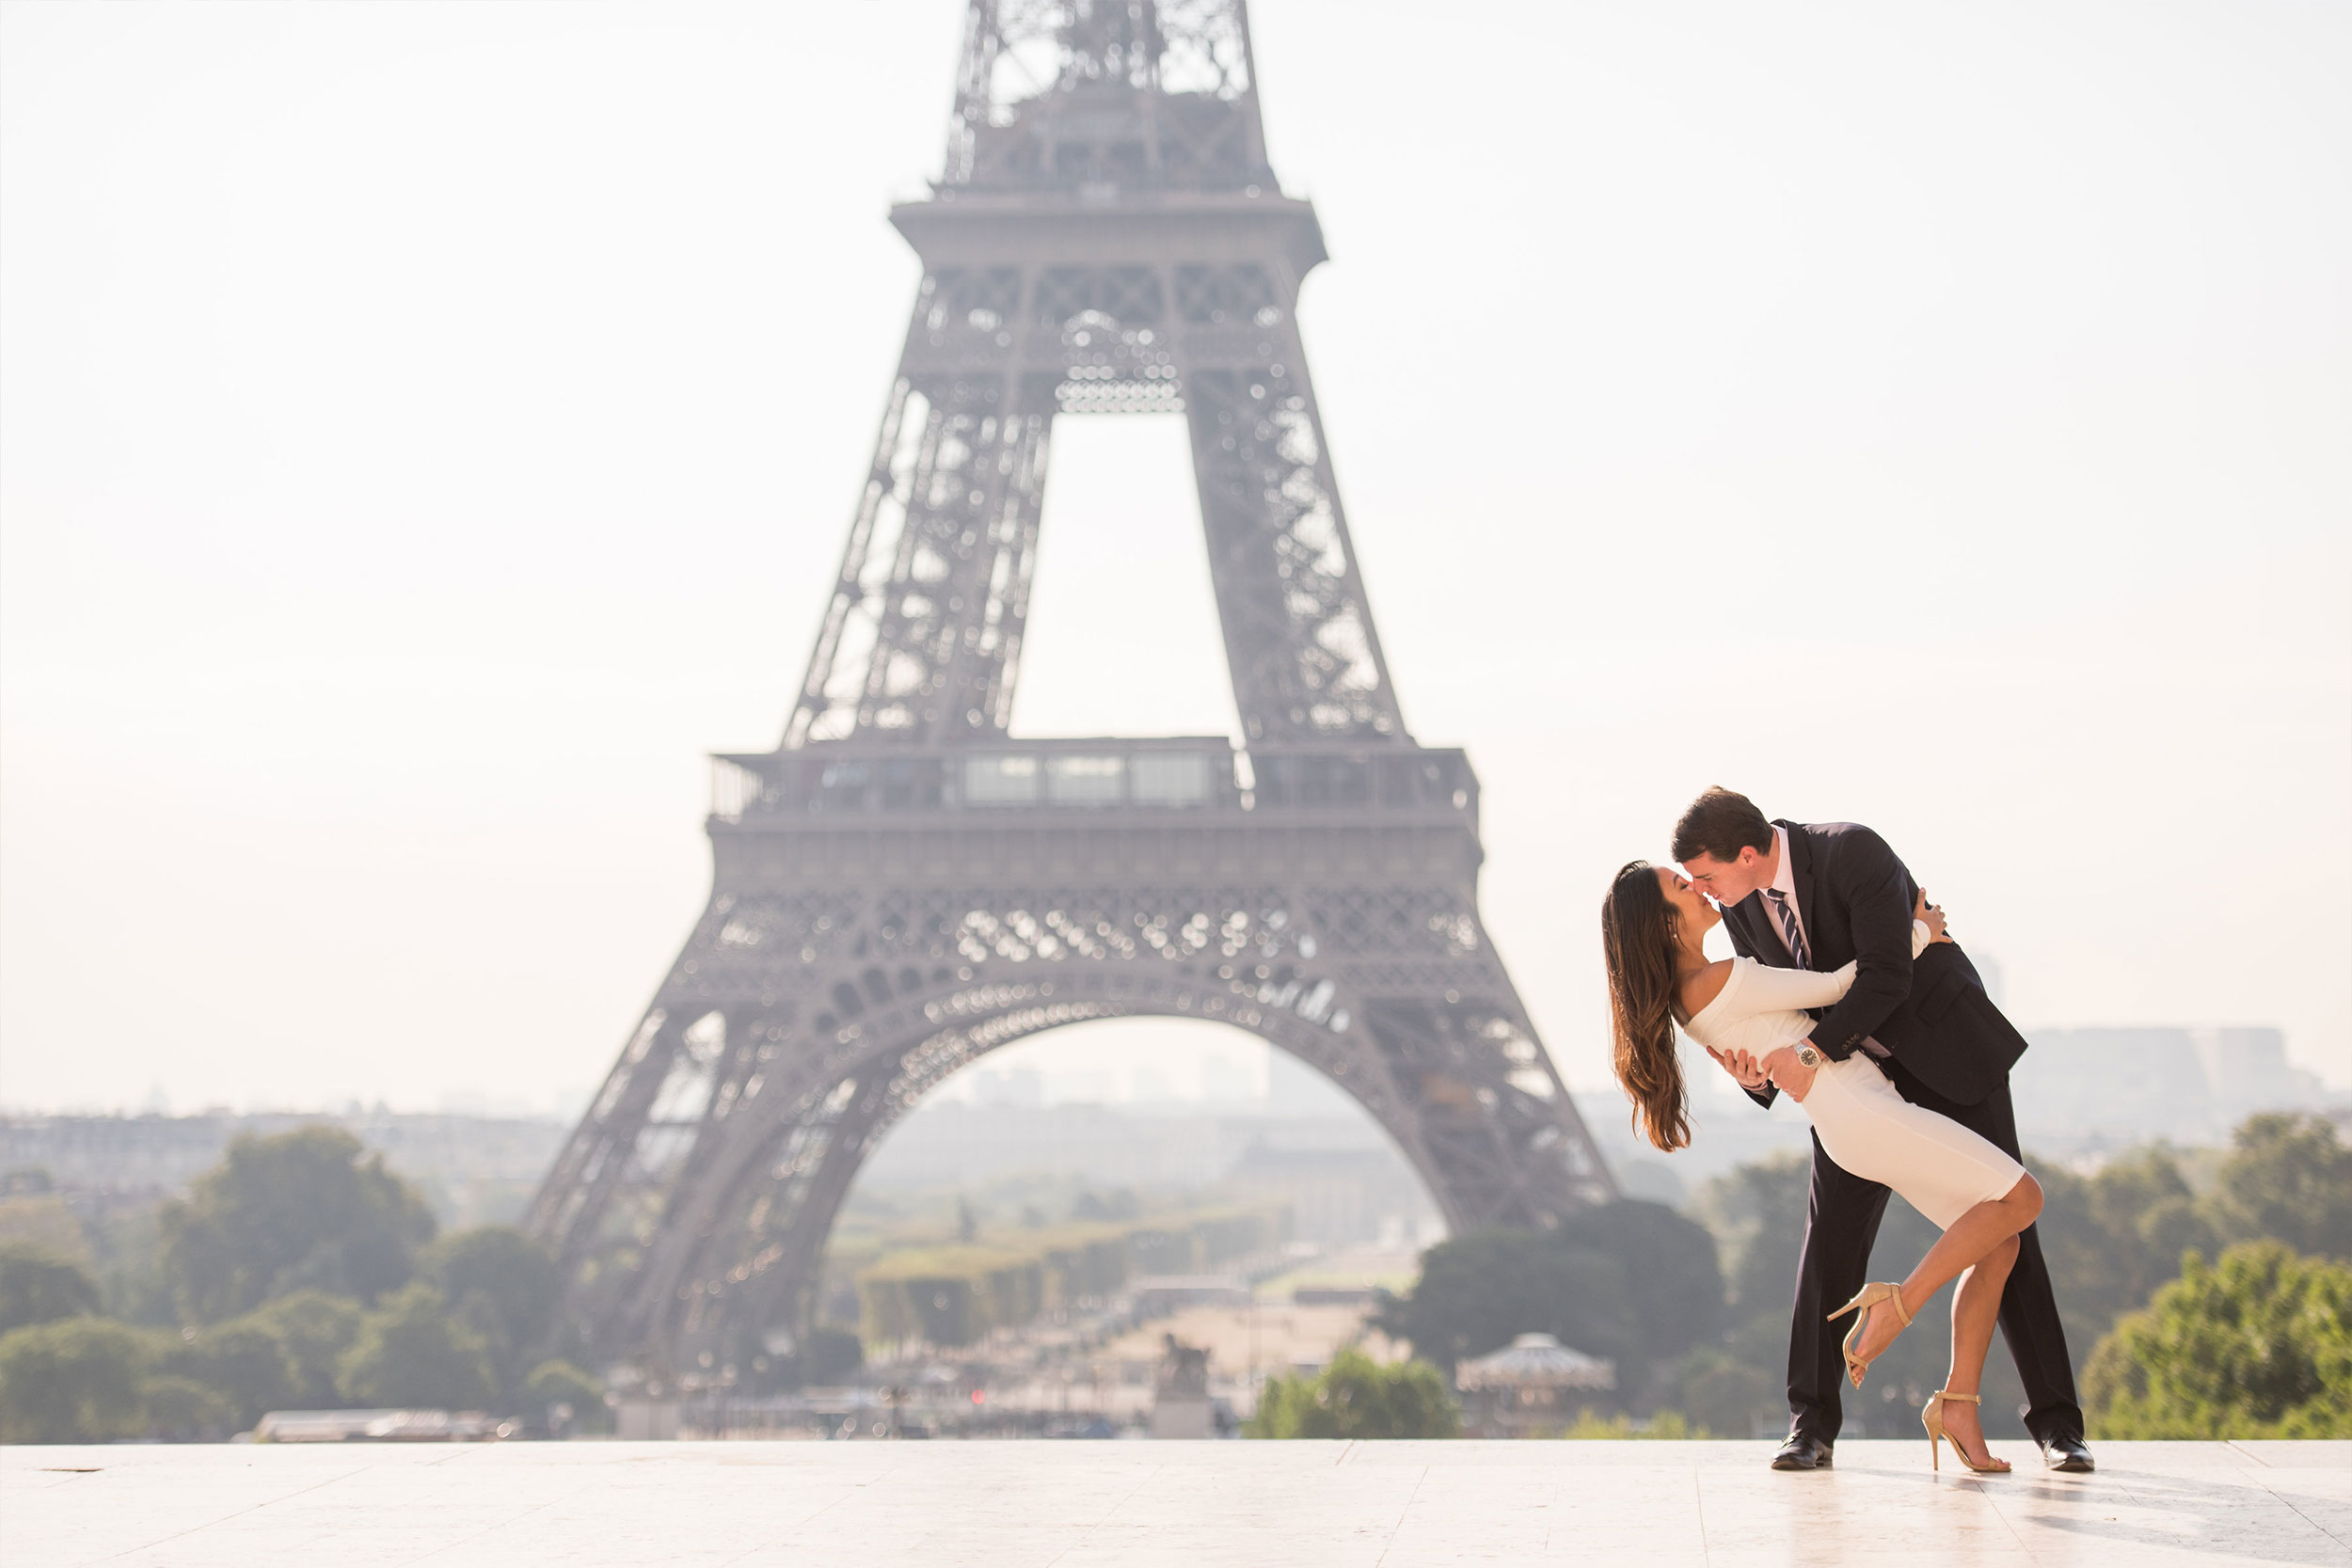 Eiffel tower with cafe in front clipart jpg stock Pictours™ Paris Photography - Proposals, Elopements, Family Portraits jpg stock